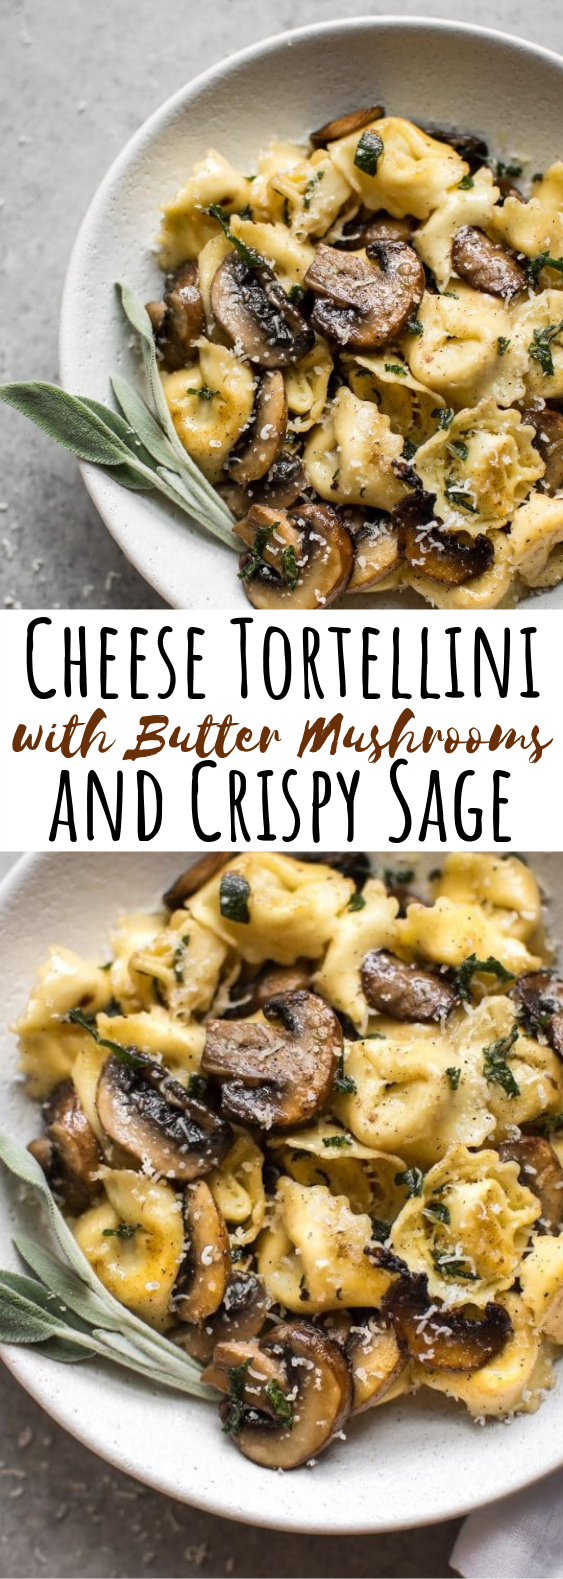 Cheese Tortellini with Butter, Mushrooms, and Crispy Sage #dinner #pasta